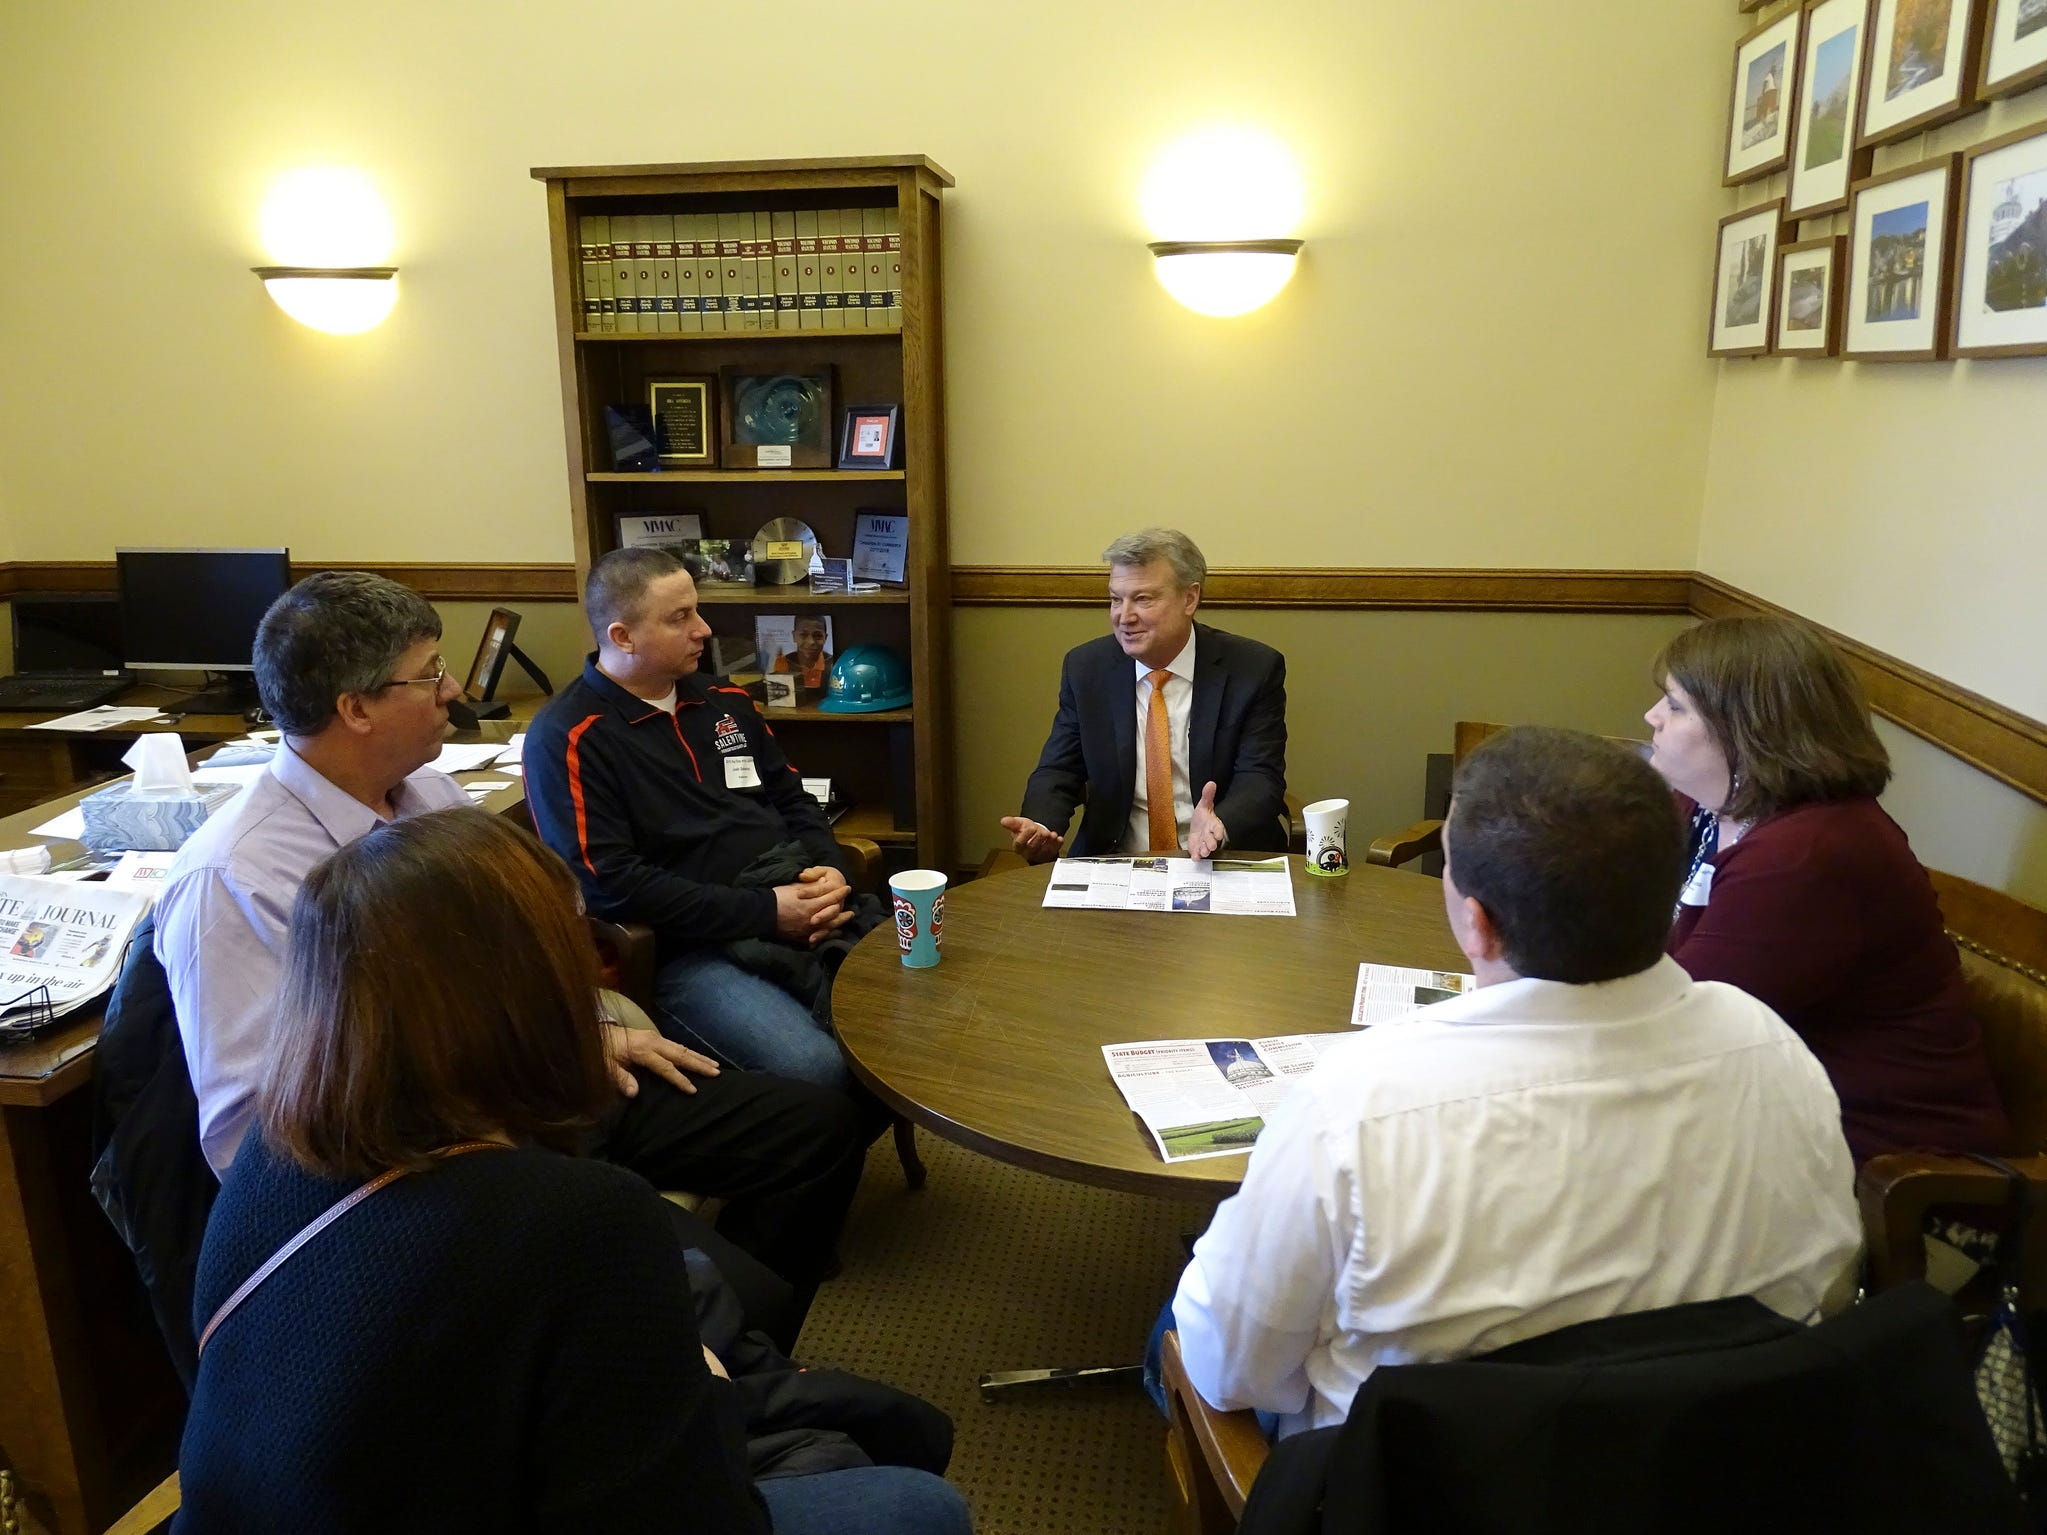 Kewaunee County Farm Bureau members met with Rep. Kitchens to talk about clean water and the need for farmers to have a seat at the table for water-related discussions.